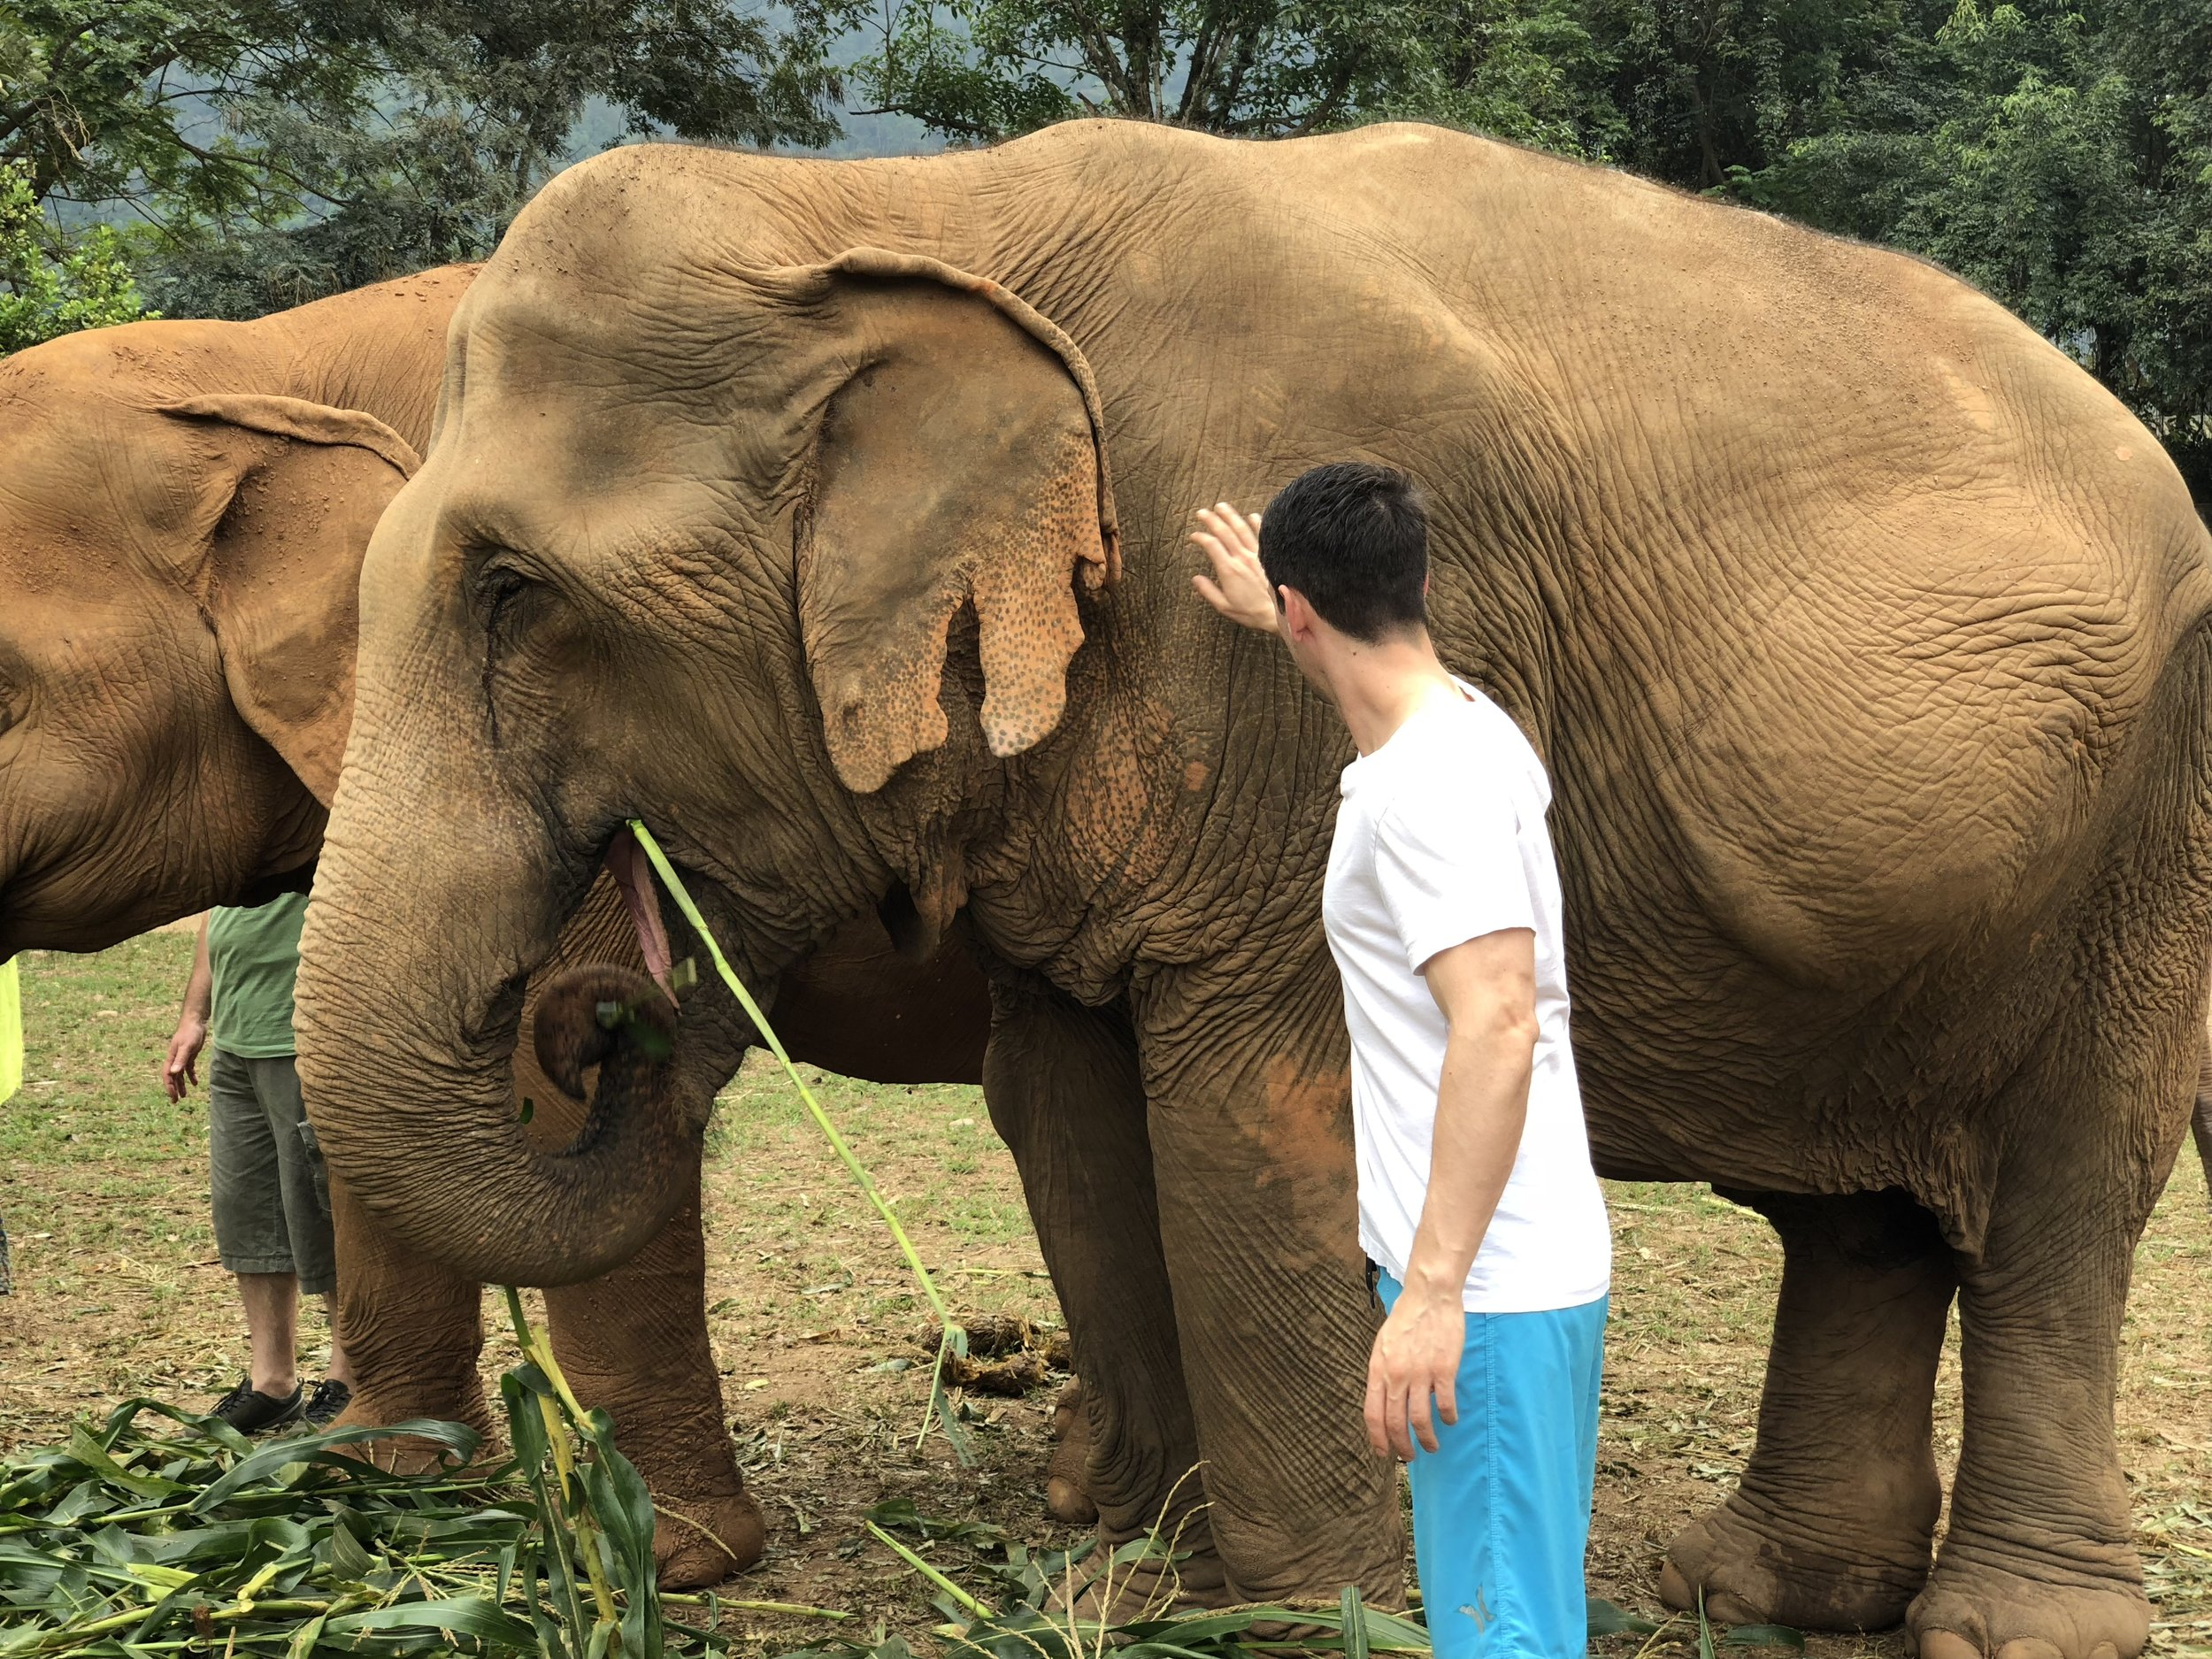 In this picture, you can see the elephant's damaged ear from the bullhooks used previously.